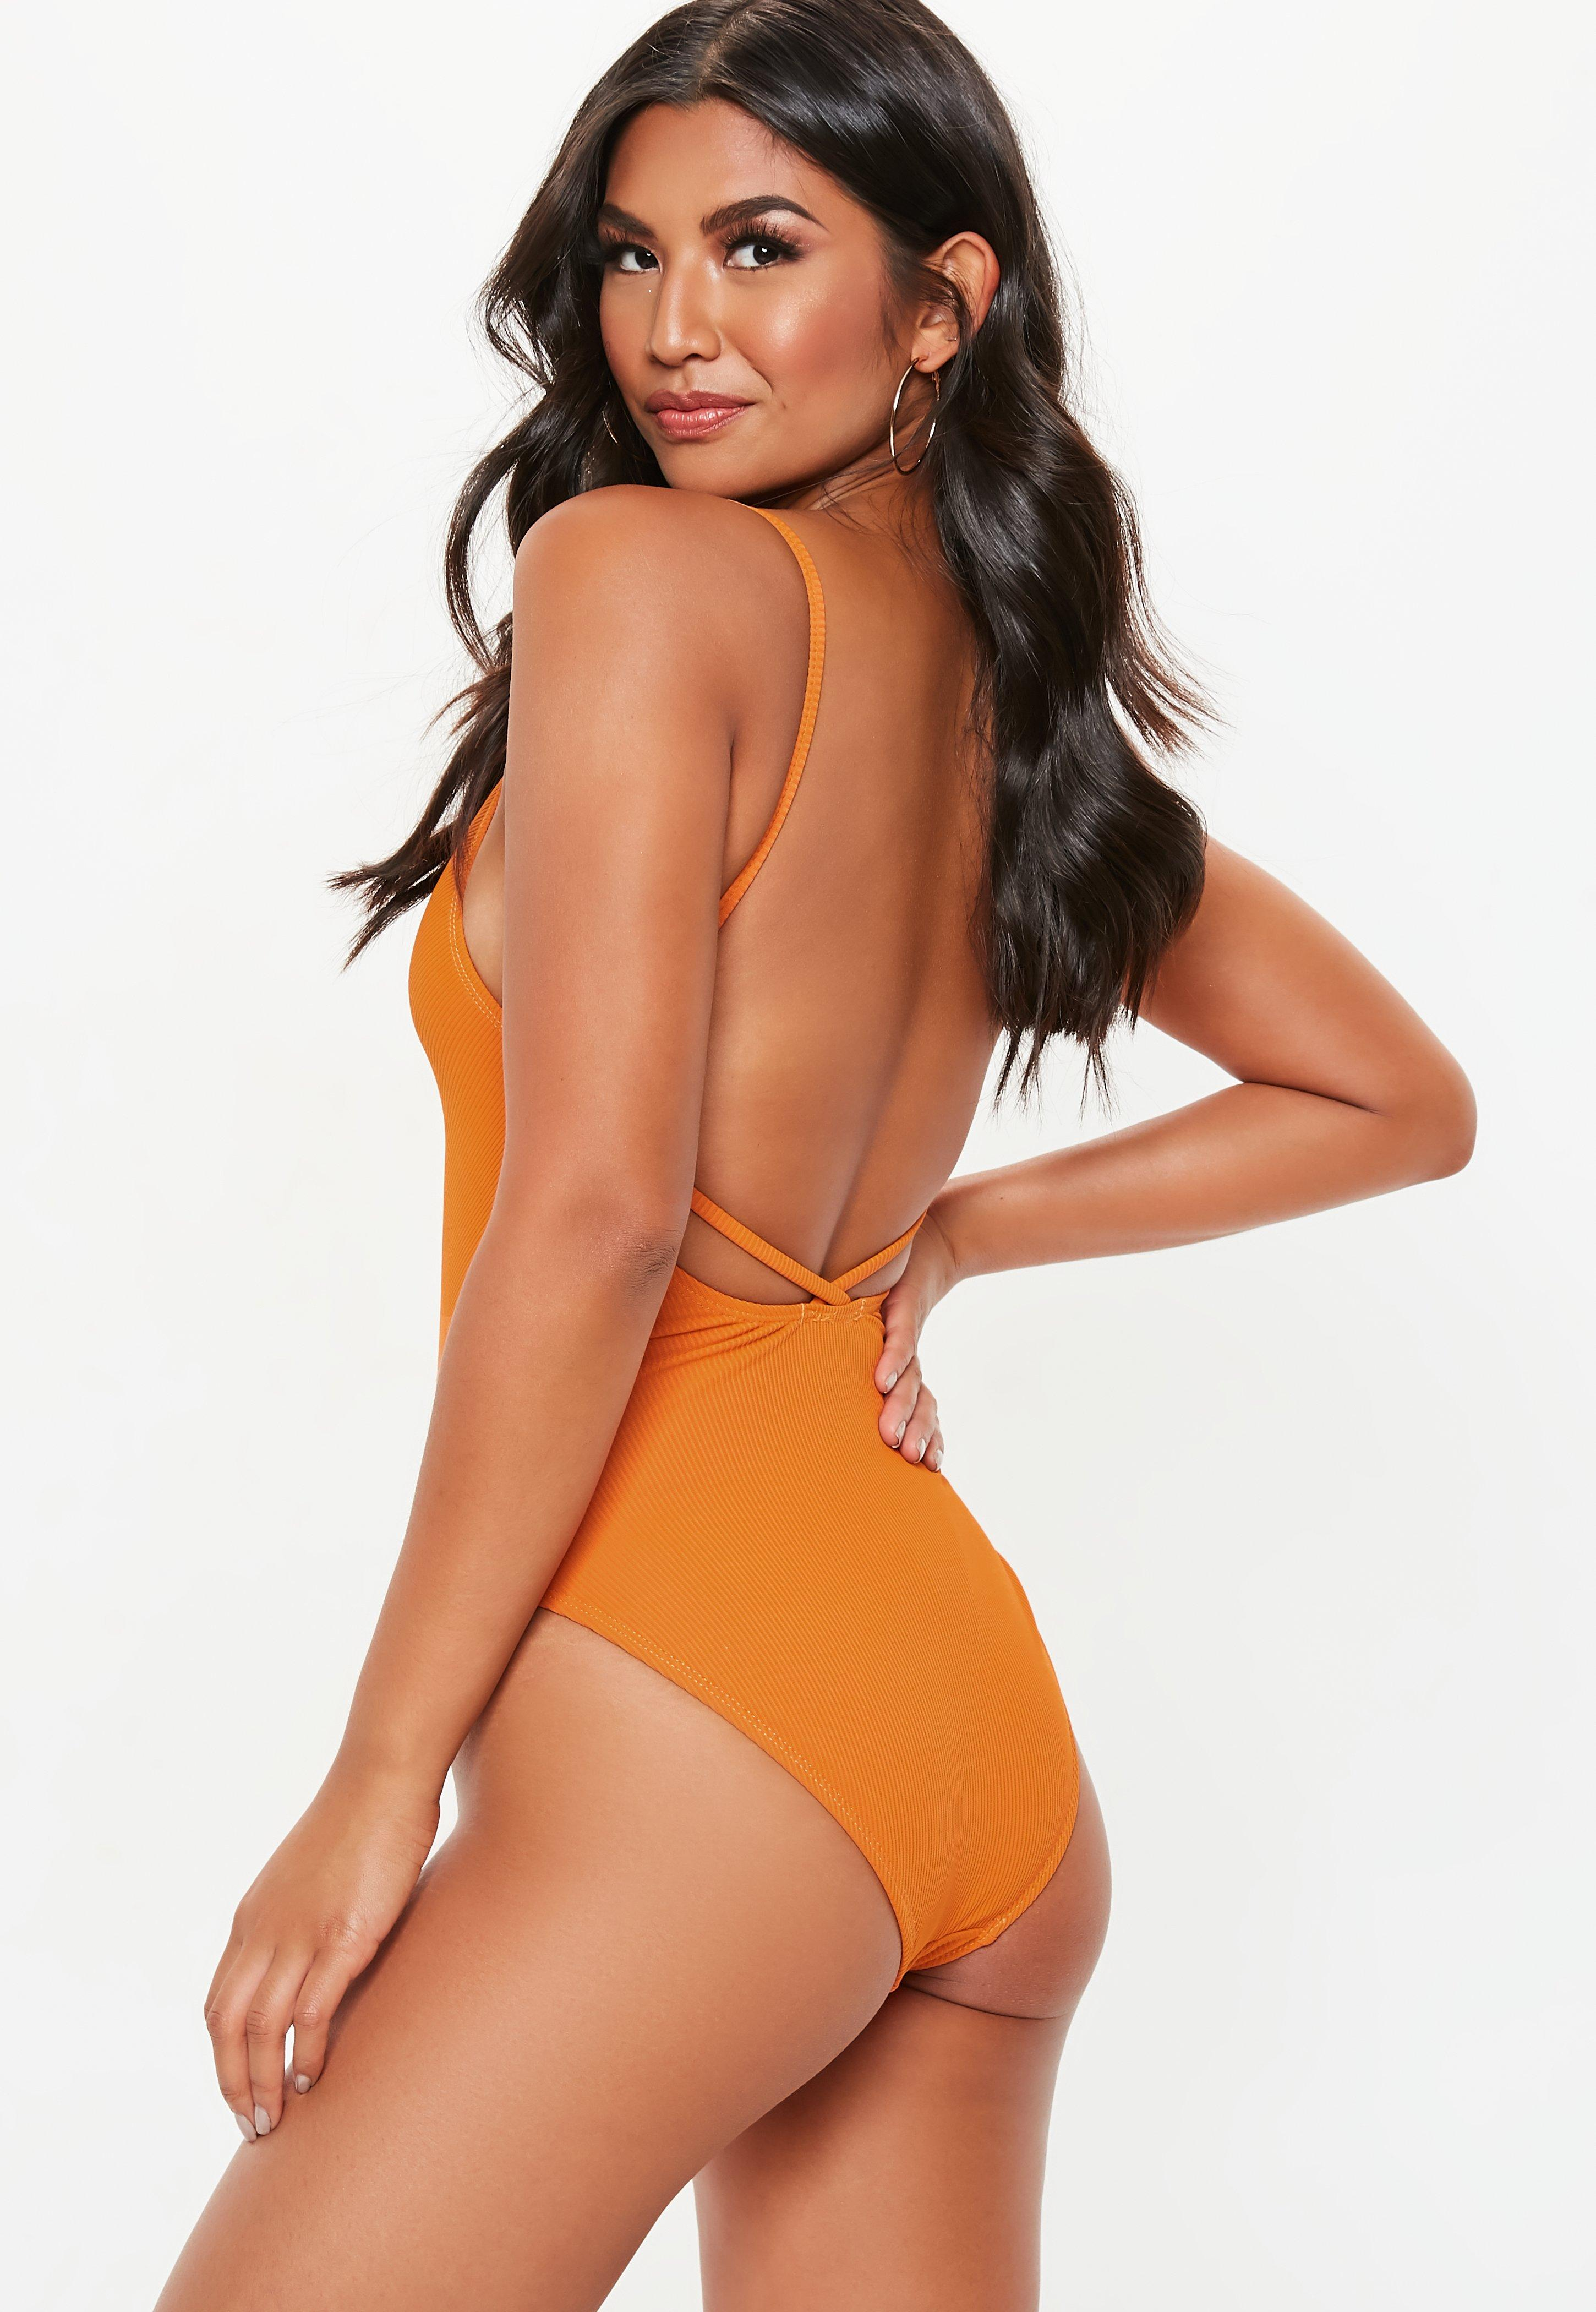 beabbd6a27 One Piece Swimsuits - High Cut Bathing Suits